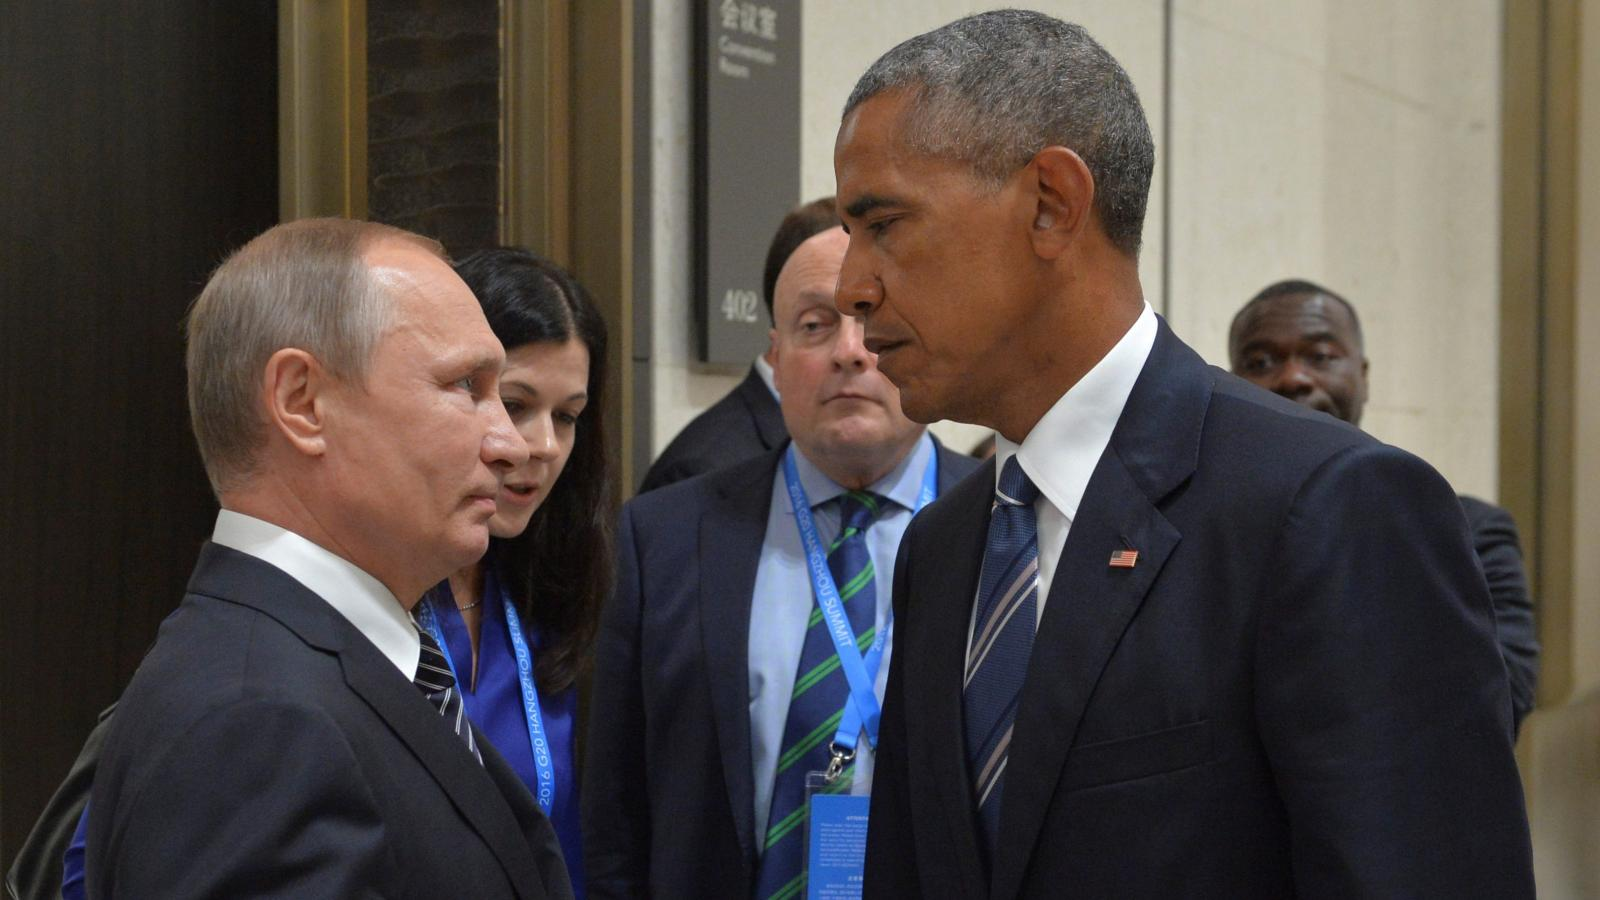 Oliver Stone Putin Interview Vladimir Putin Says Russia Proposed A Cyber War Treaty In 2015 But Obama S Administration Ignored Them Quartz